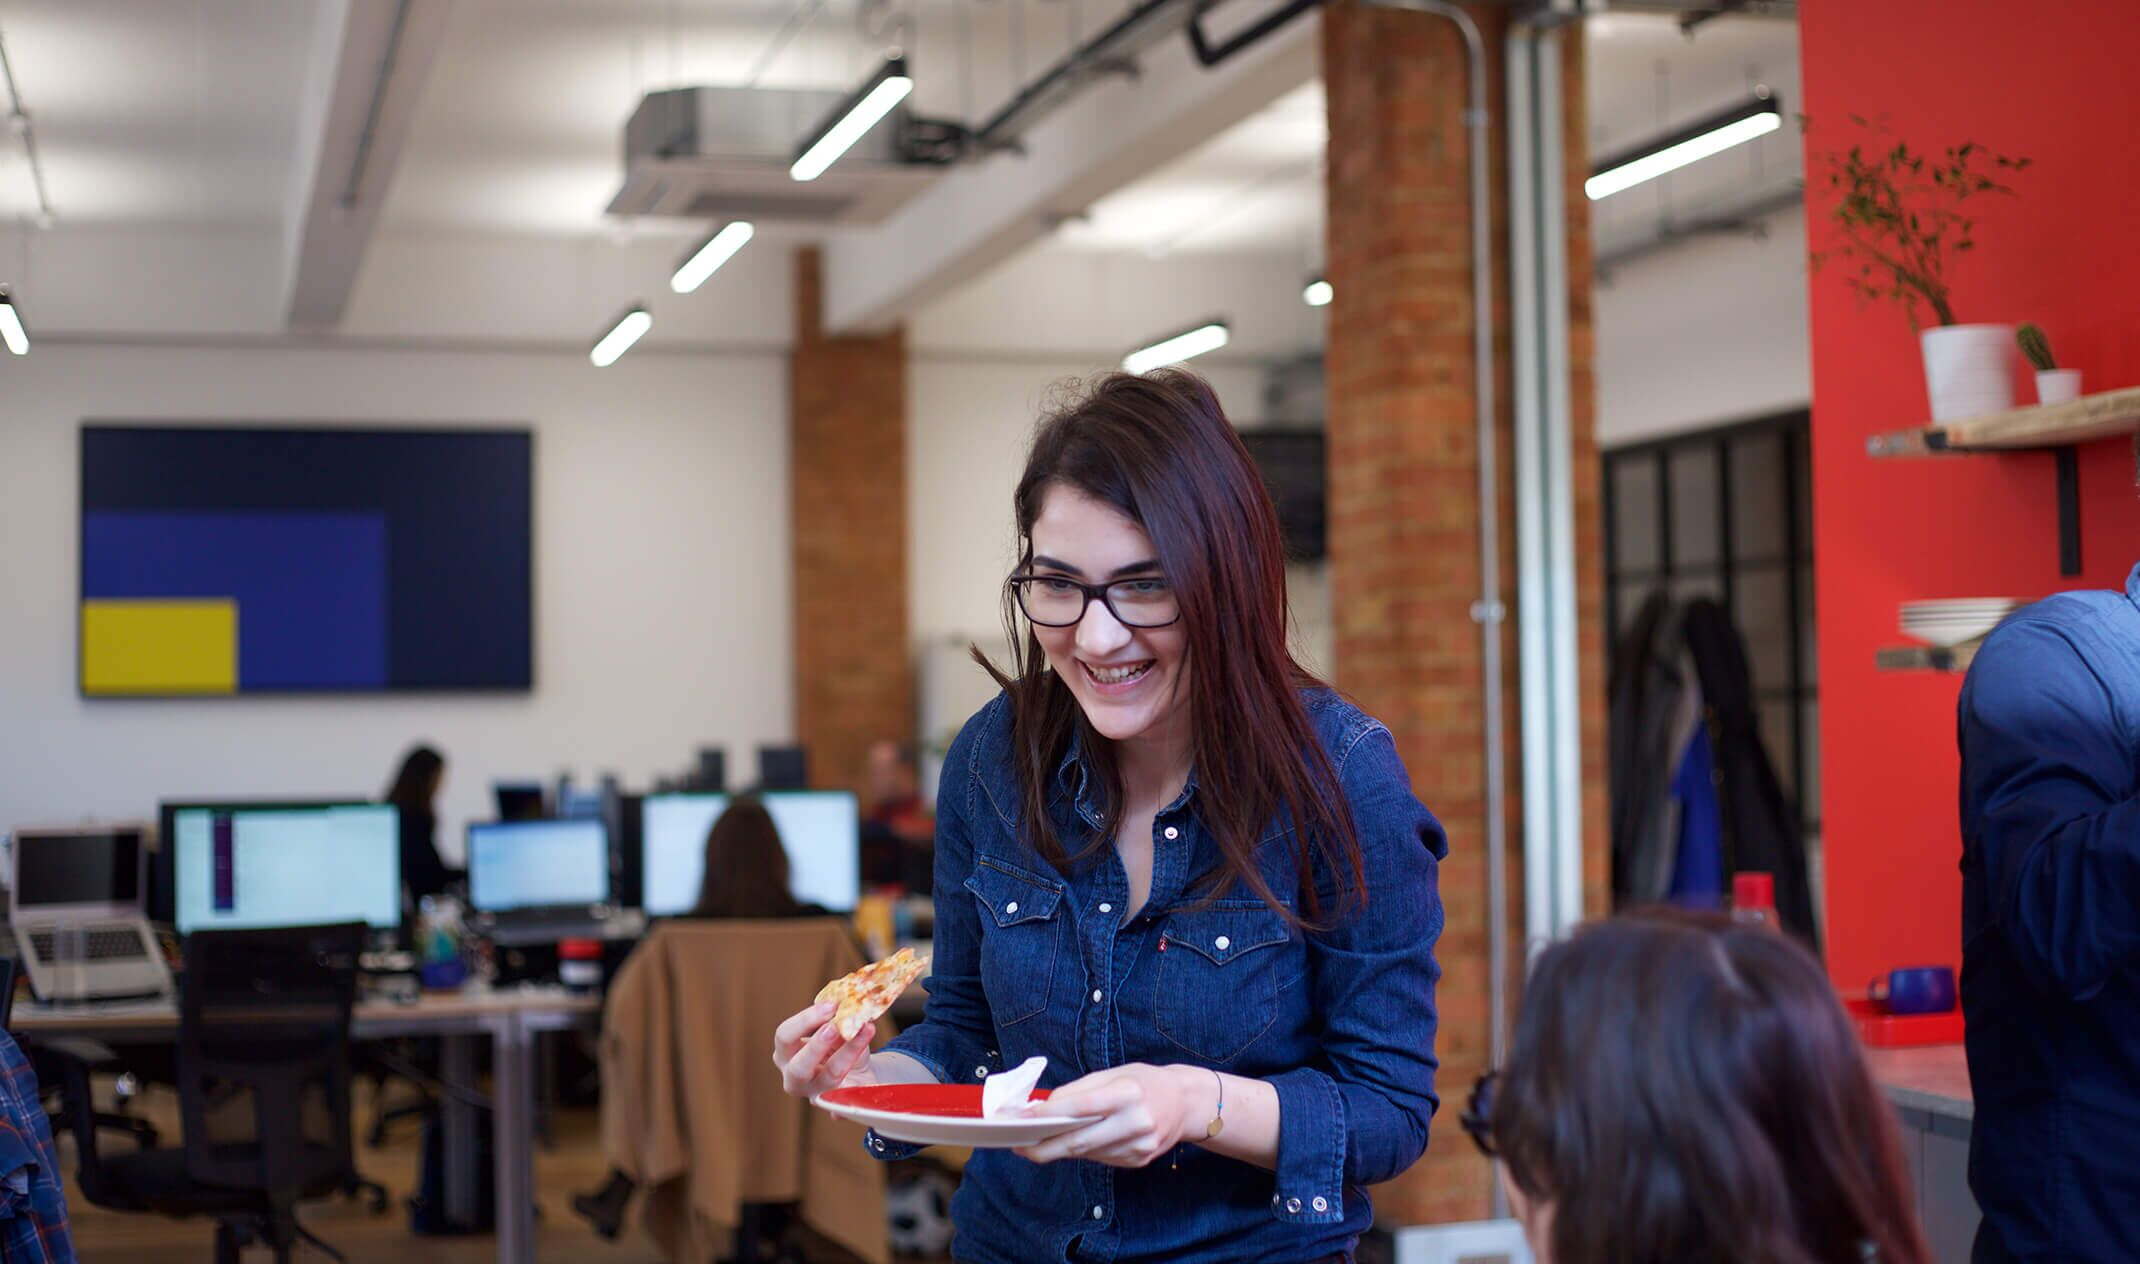 woman smiling holding plate of pizza